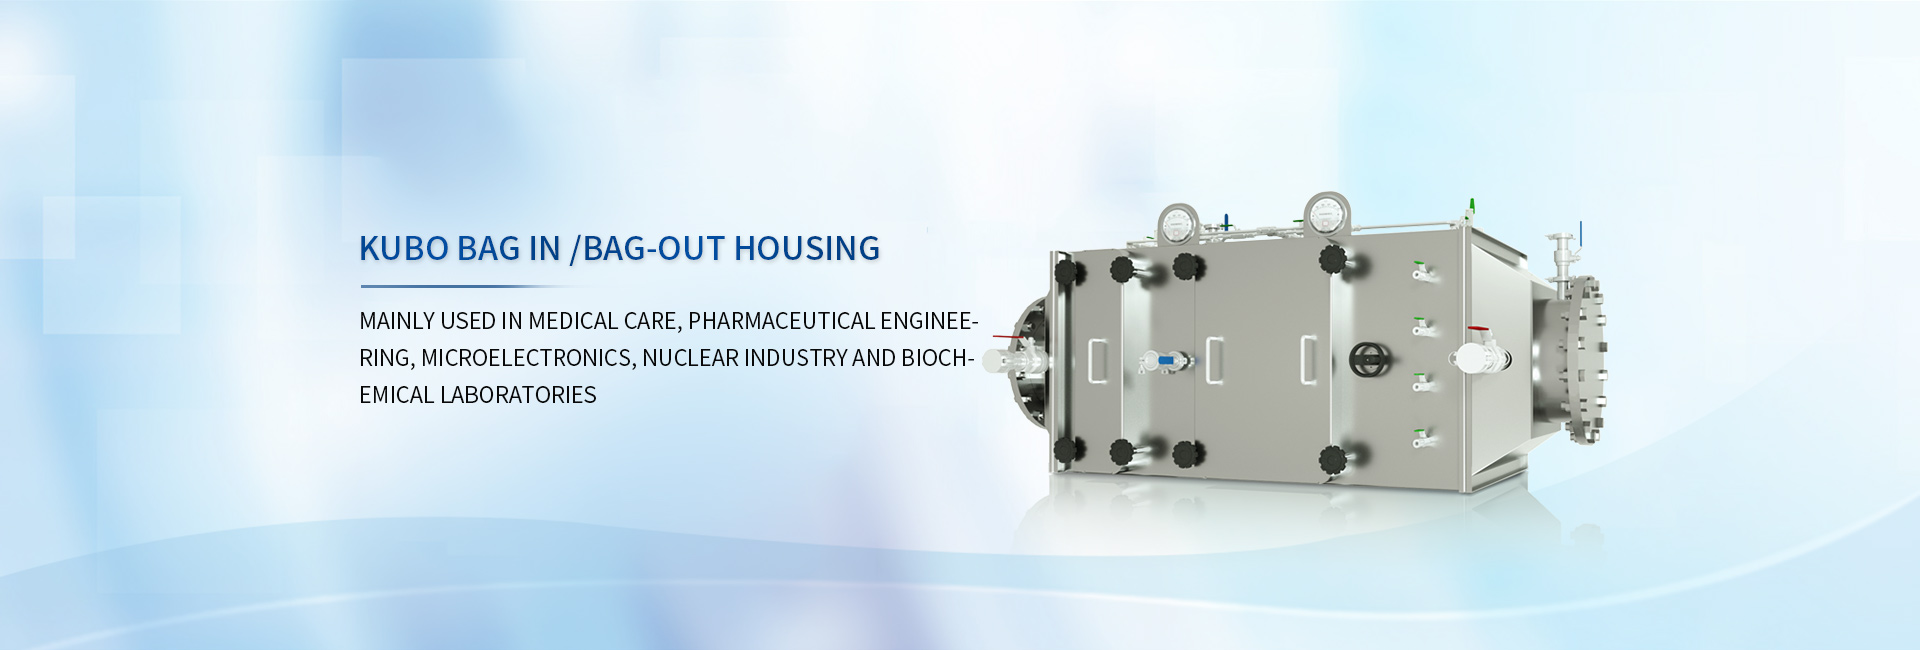 Suzhou Kelsen Air Filtration System Co., Ltd.